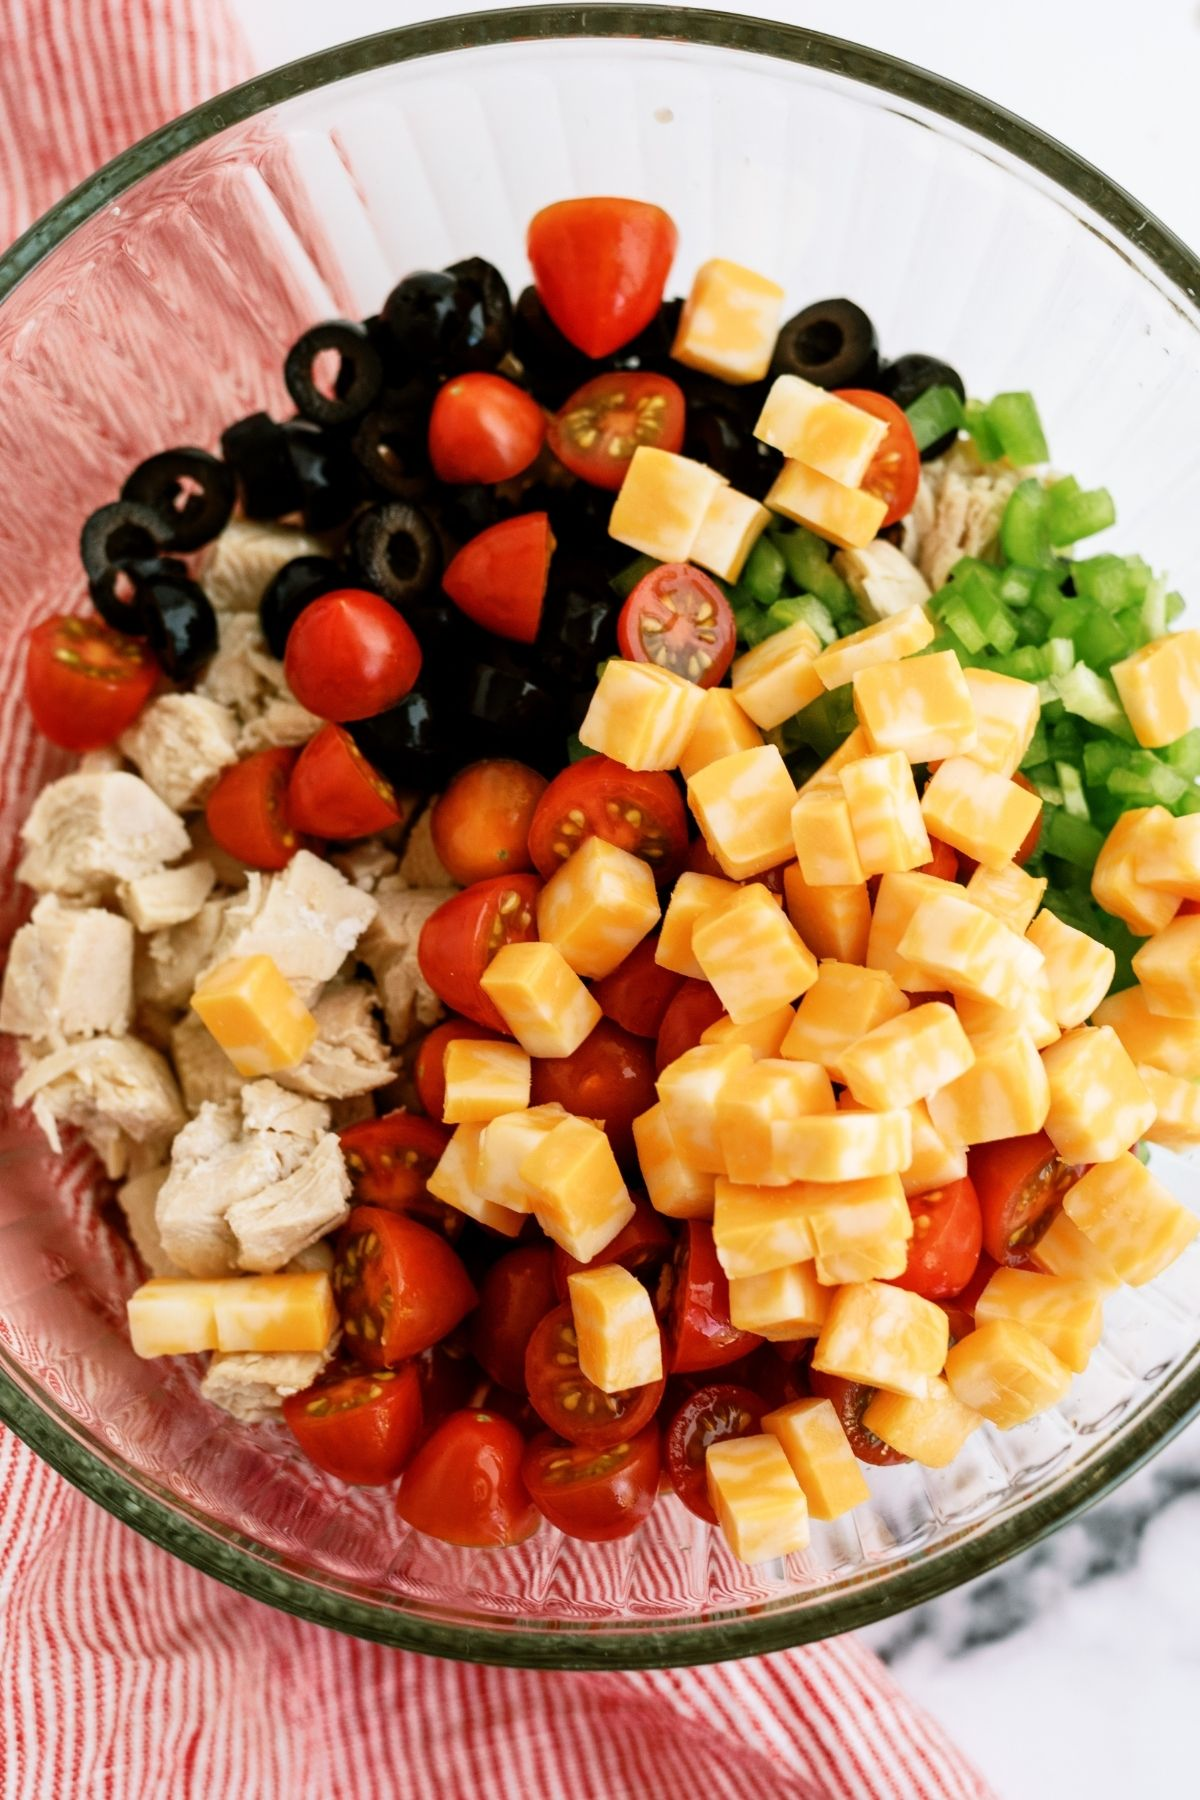 Ingredients for Grilled Chicken Bow Tie Pasta Salad mixed in a glass bowl